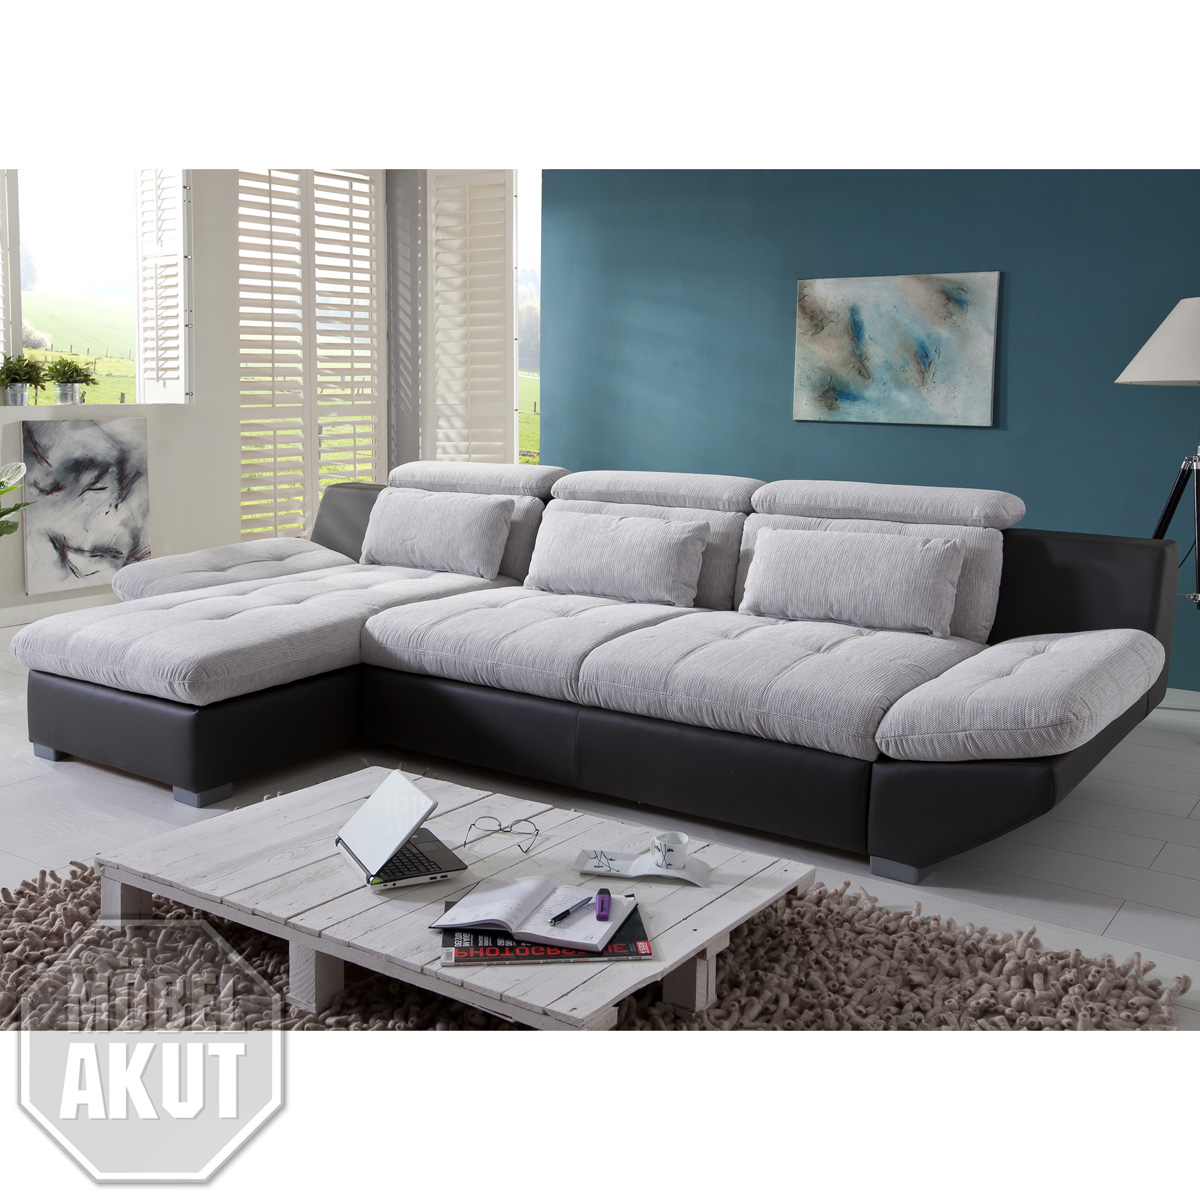 wohnlandschaft eternity sofa wei hell grau schwarz rechts links bettfunktion ebay. Black Bedroom Furniture Sets. Home Design Ideas